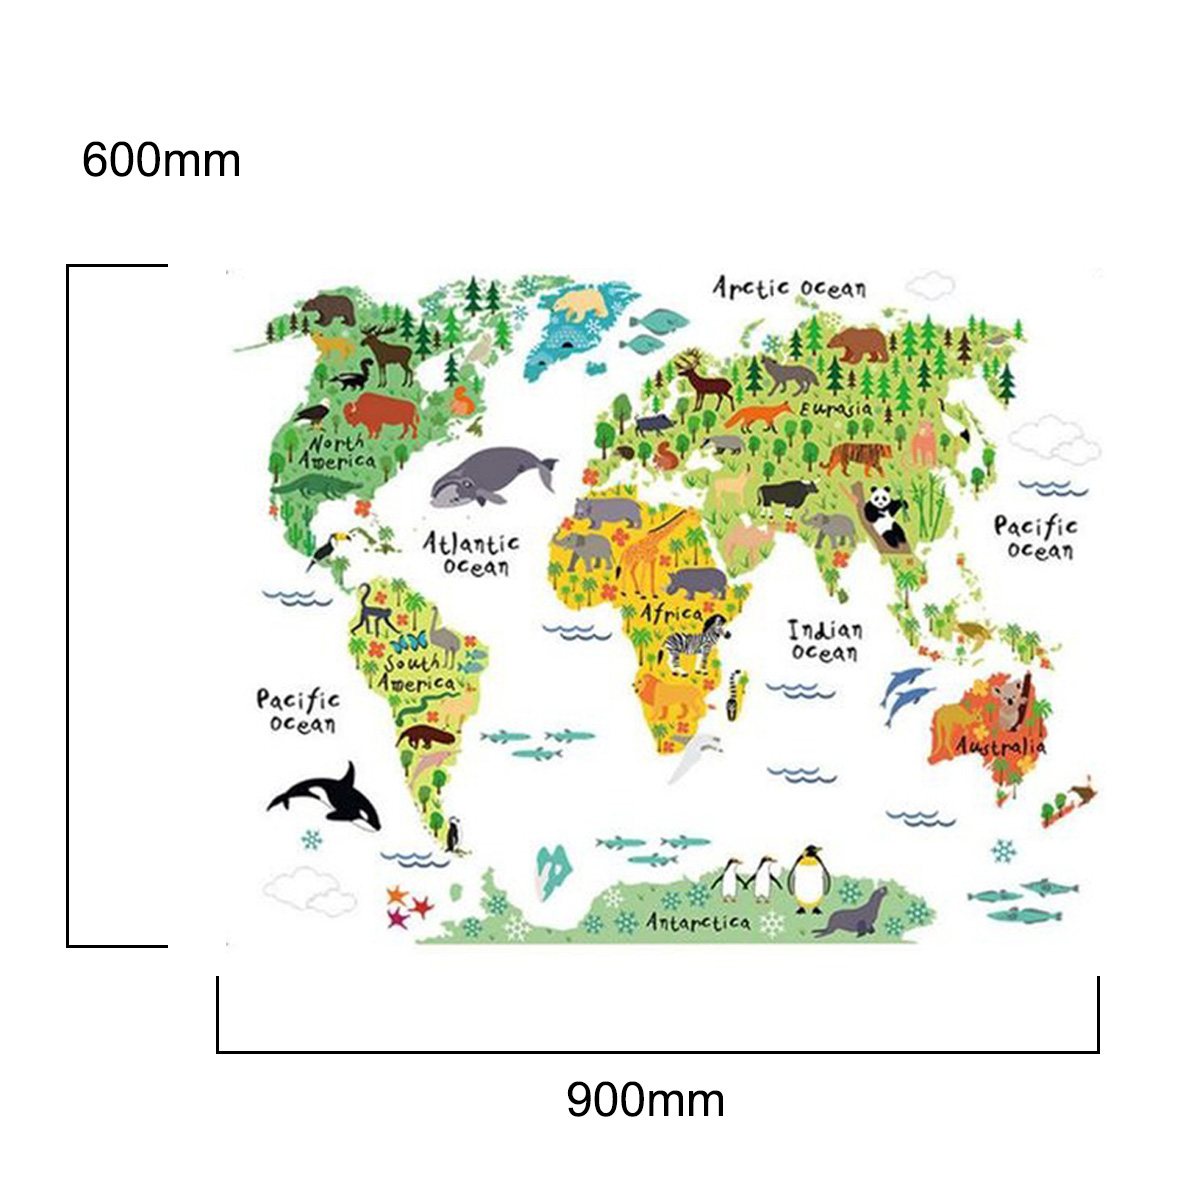 Hot sale Large Kids Educational Animal World Map Removable Art Mural Stickers vintage removable world map pattern bedroom decoration wall stickers